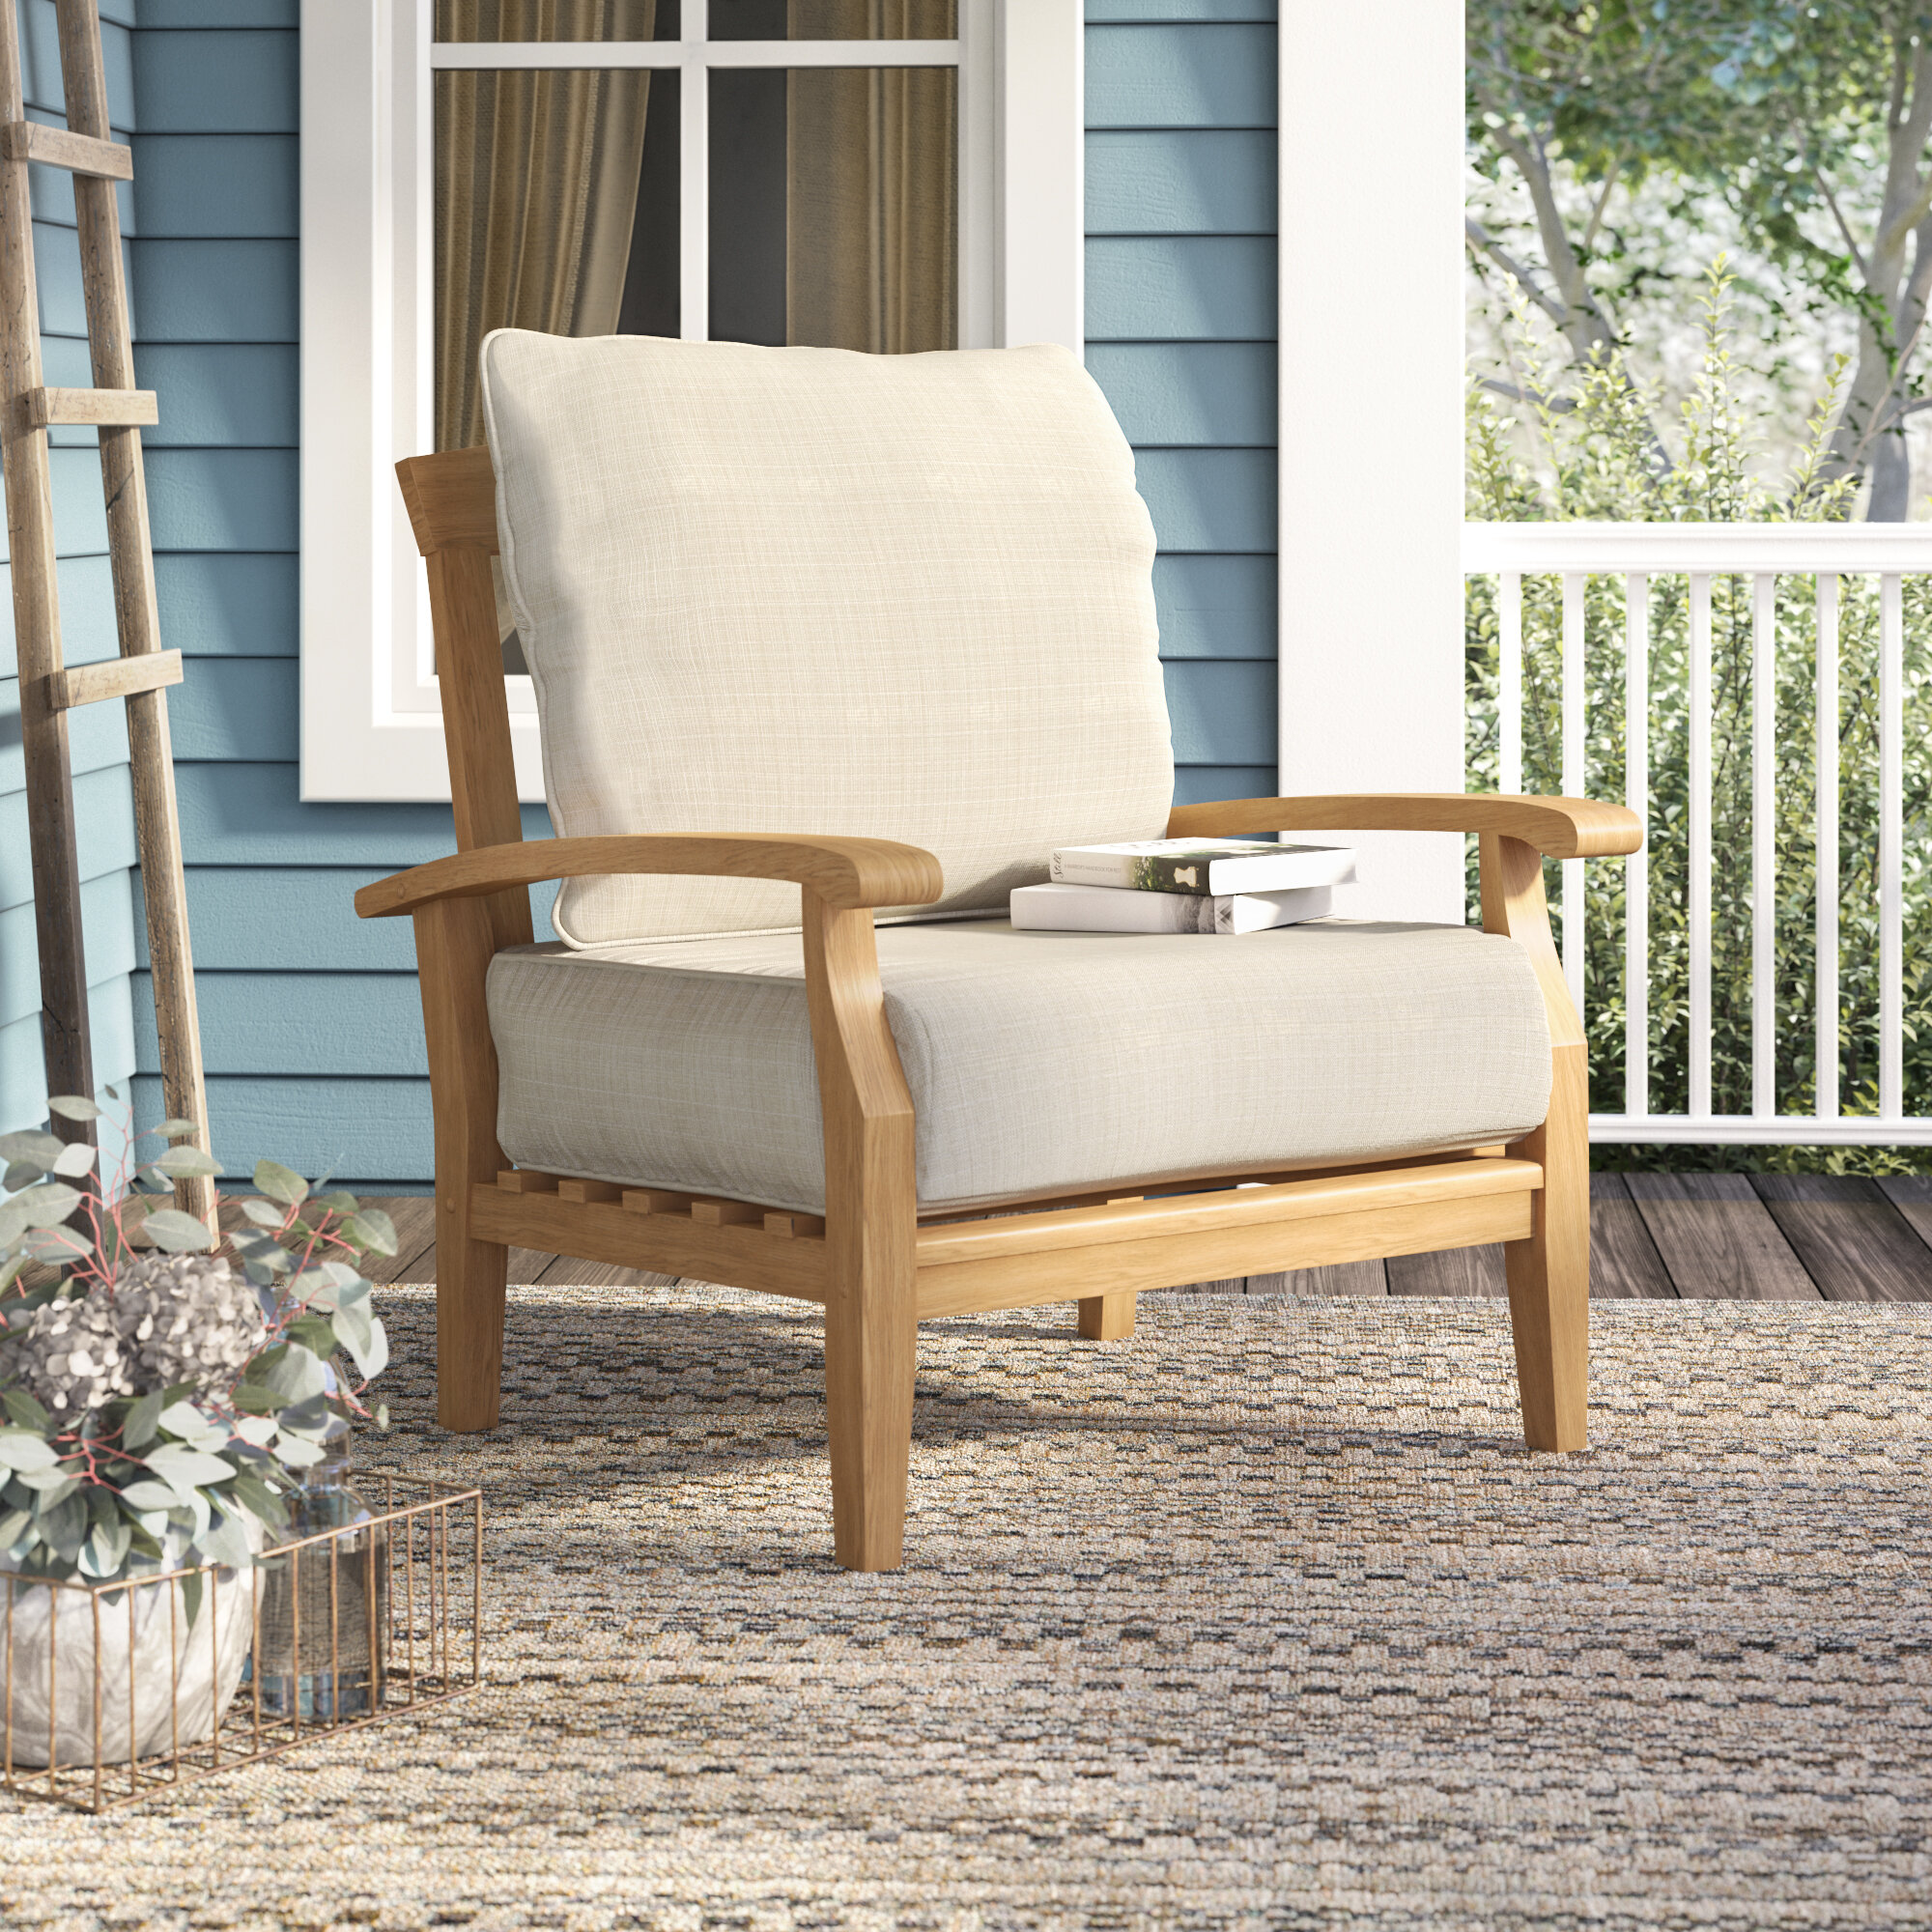 Birch Lane Heritage Summerton Teak Patio Chair With Cushions